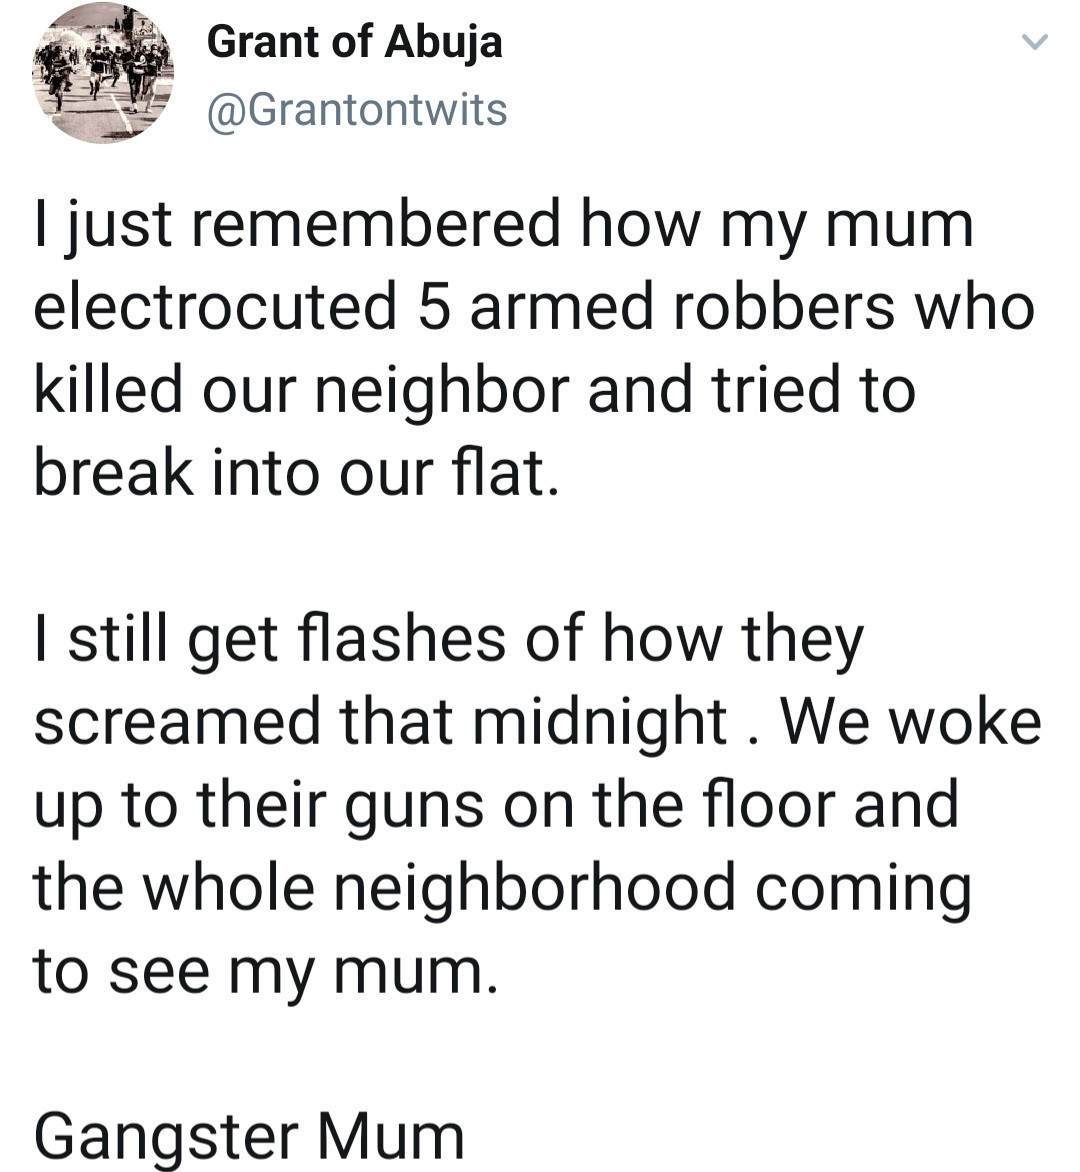 Man recounts how his mother allegedly dealt with armed robbers who tried to break into their house